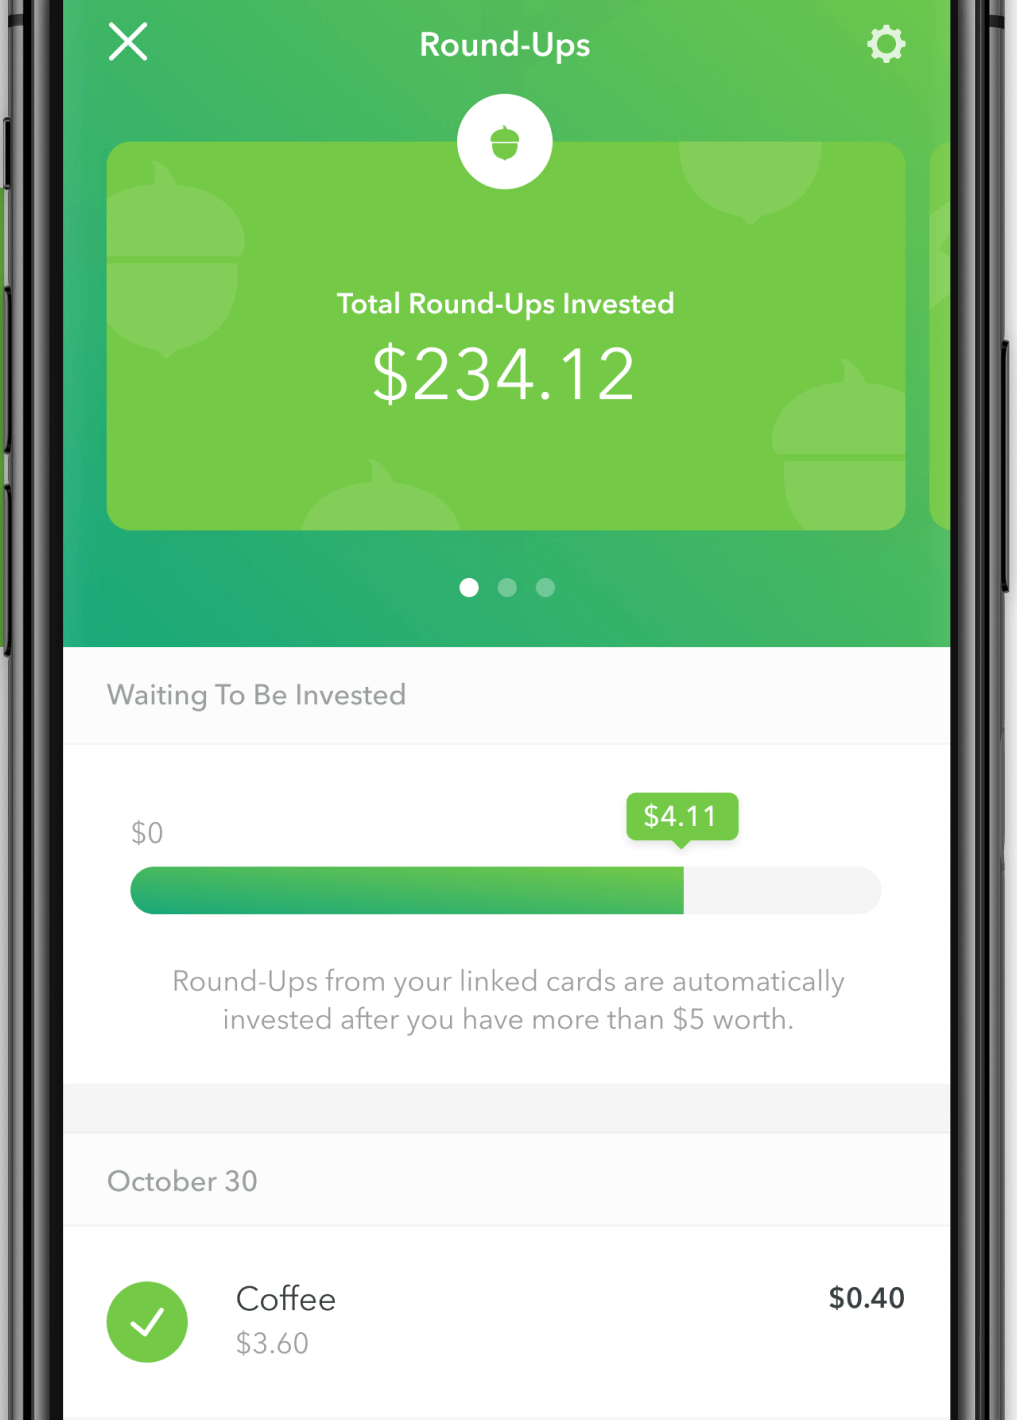 A view of the Acorns app showing roundups